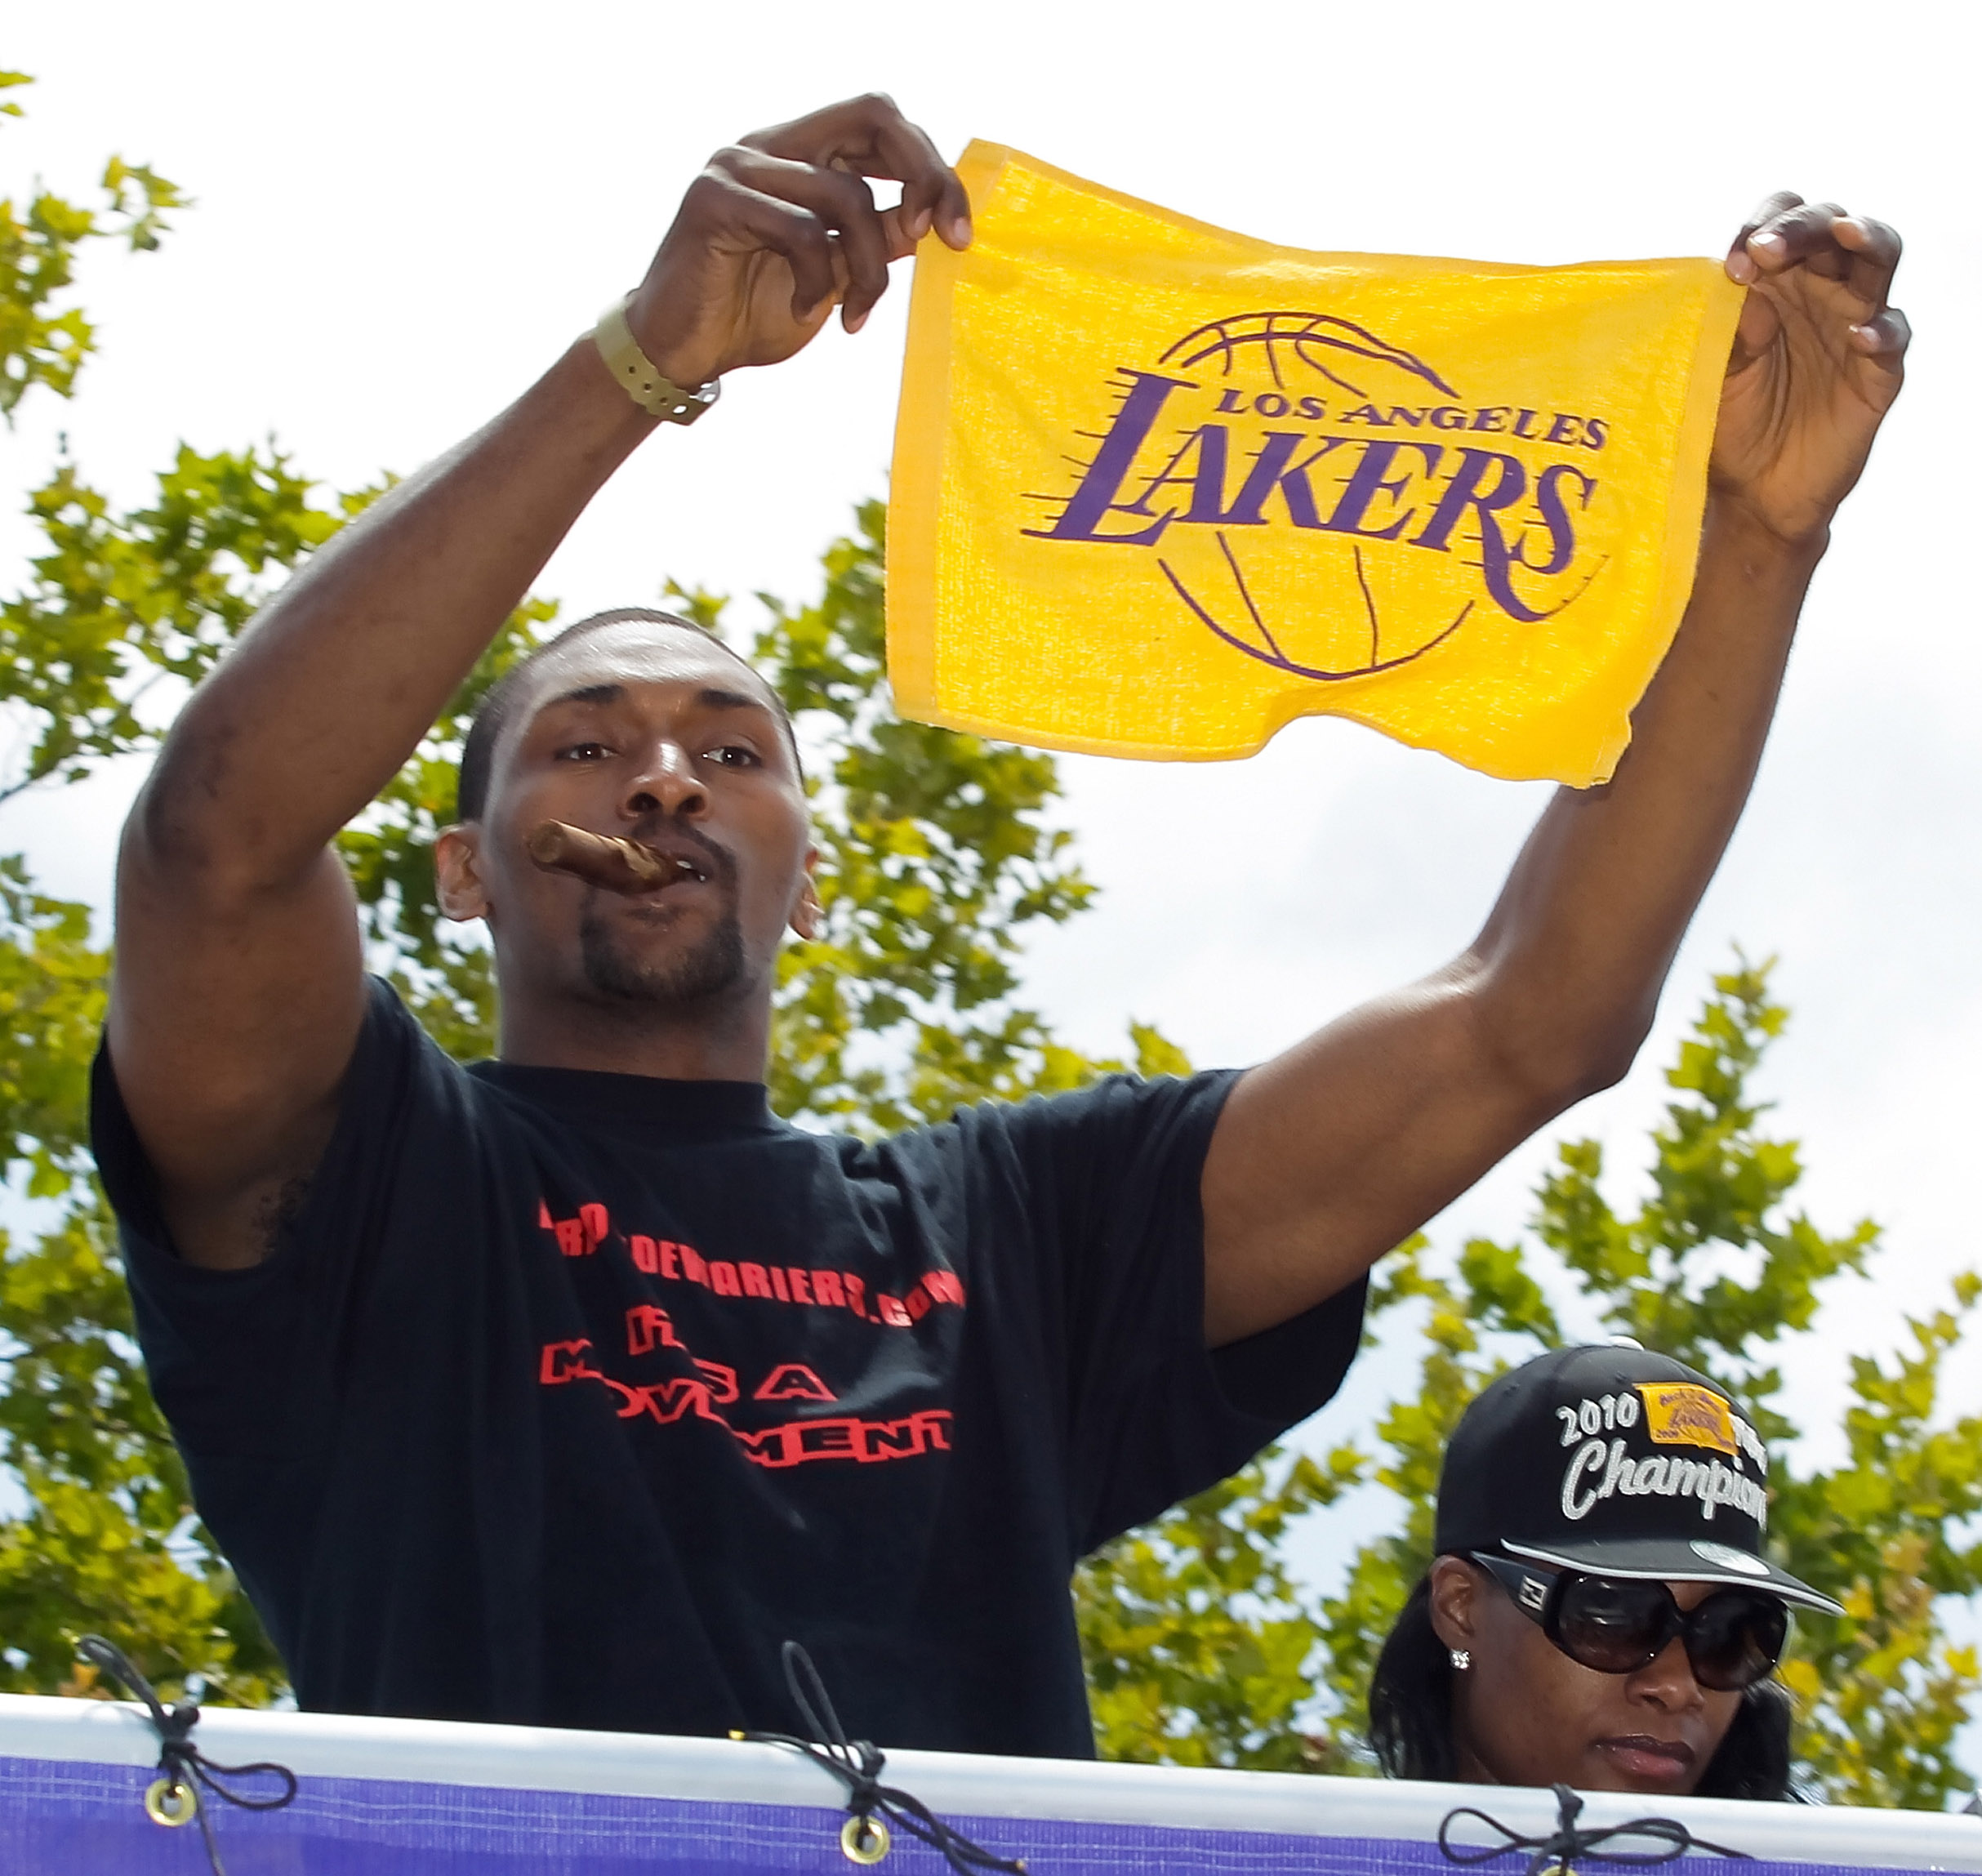 LOS ANGELES, CA - JUNE 21:  Los Angeles Lakers small forward Ron Artest salutes the crowd while riding in the victory parade for the the NBA basketball champion team on June 21, 2010 in Los Angeles, California. The Lakers beat the Boston Celtics 87-79 in